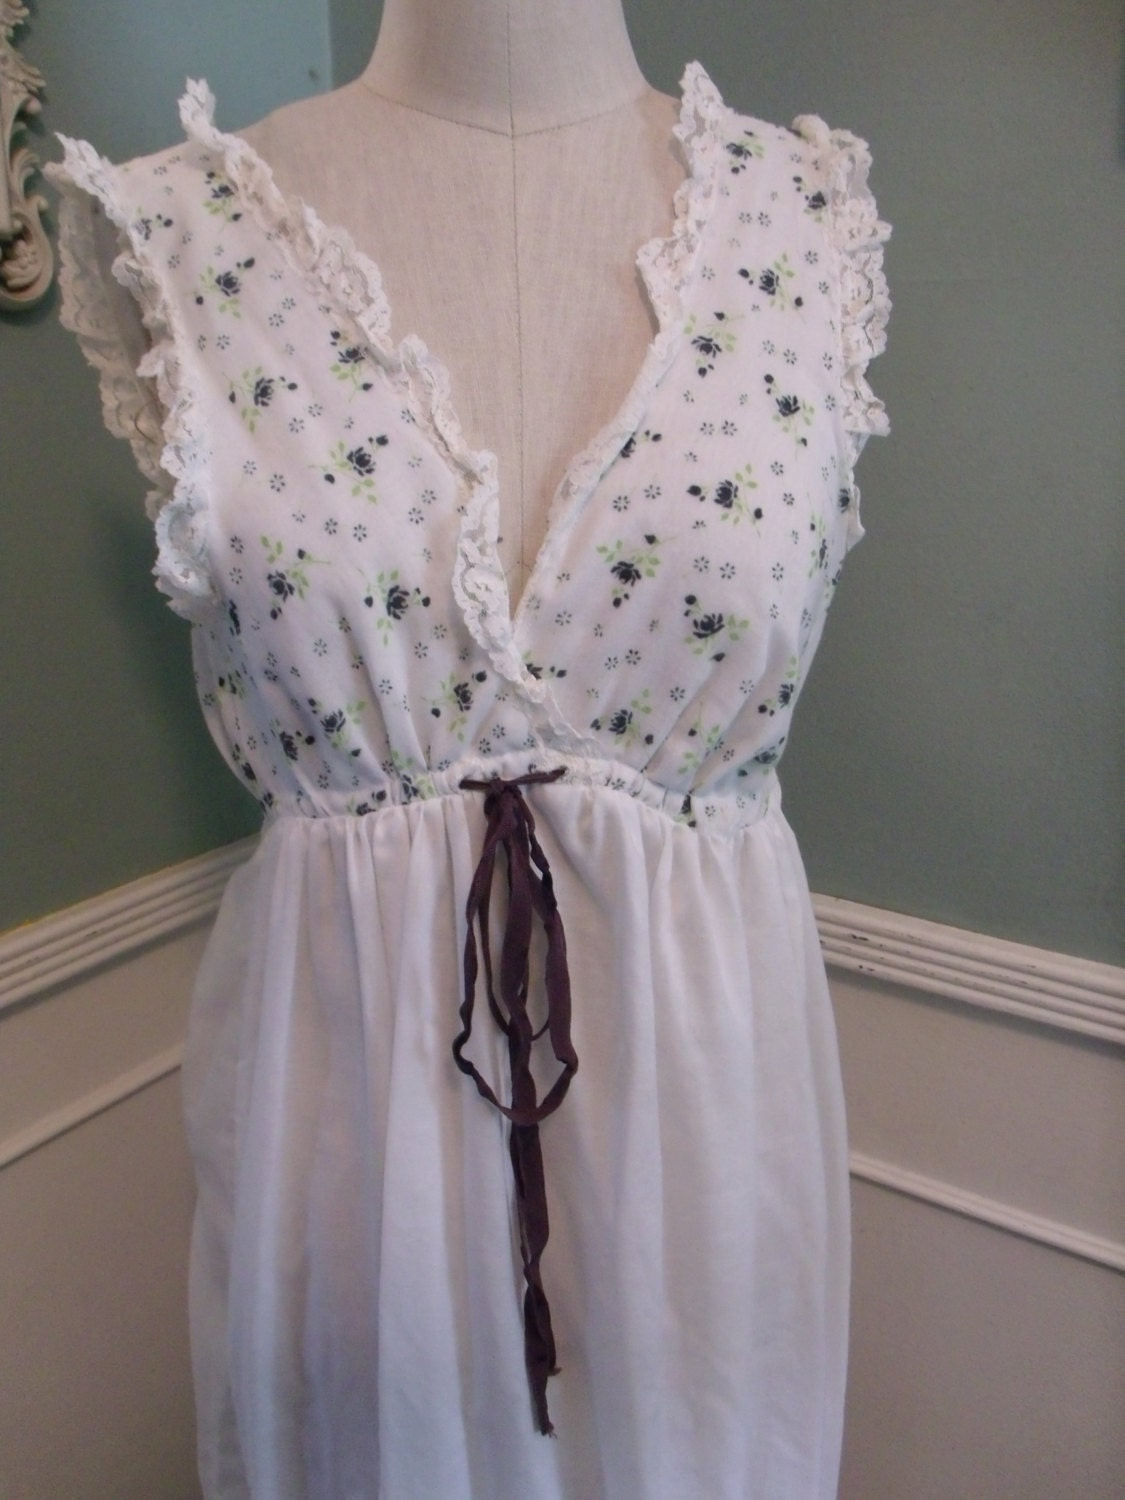 Vintage White Cotton Full Length Nightgown By